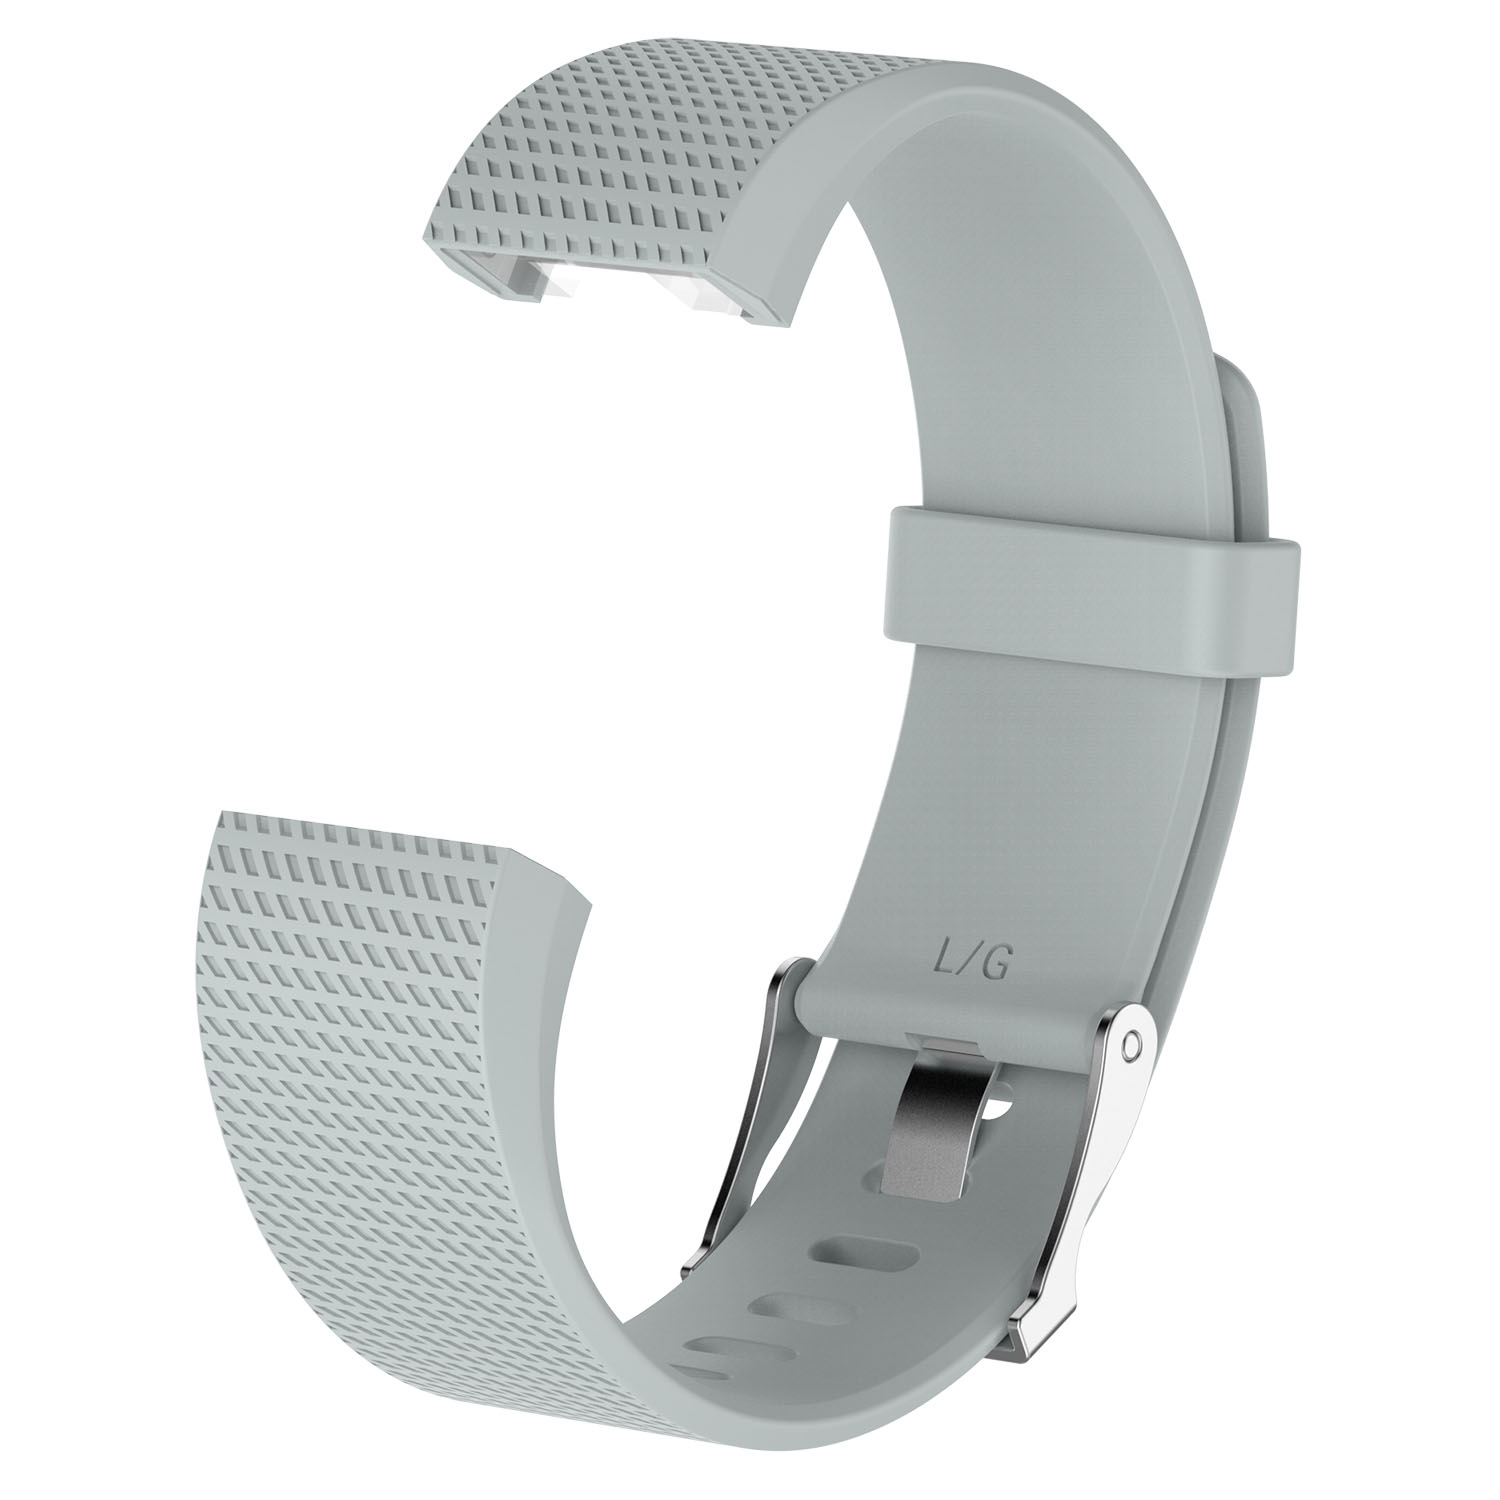 Replacement-Silicone-Wristband-Watch-Strap-Bands-Bracelet-For-Fitbit-Charge-2 thumbnail 57